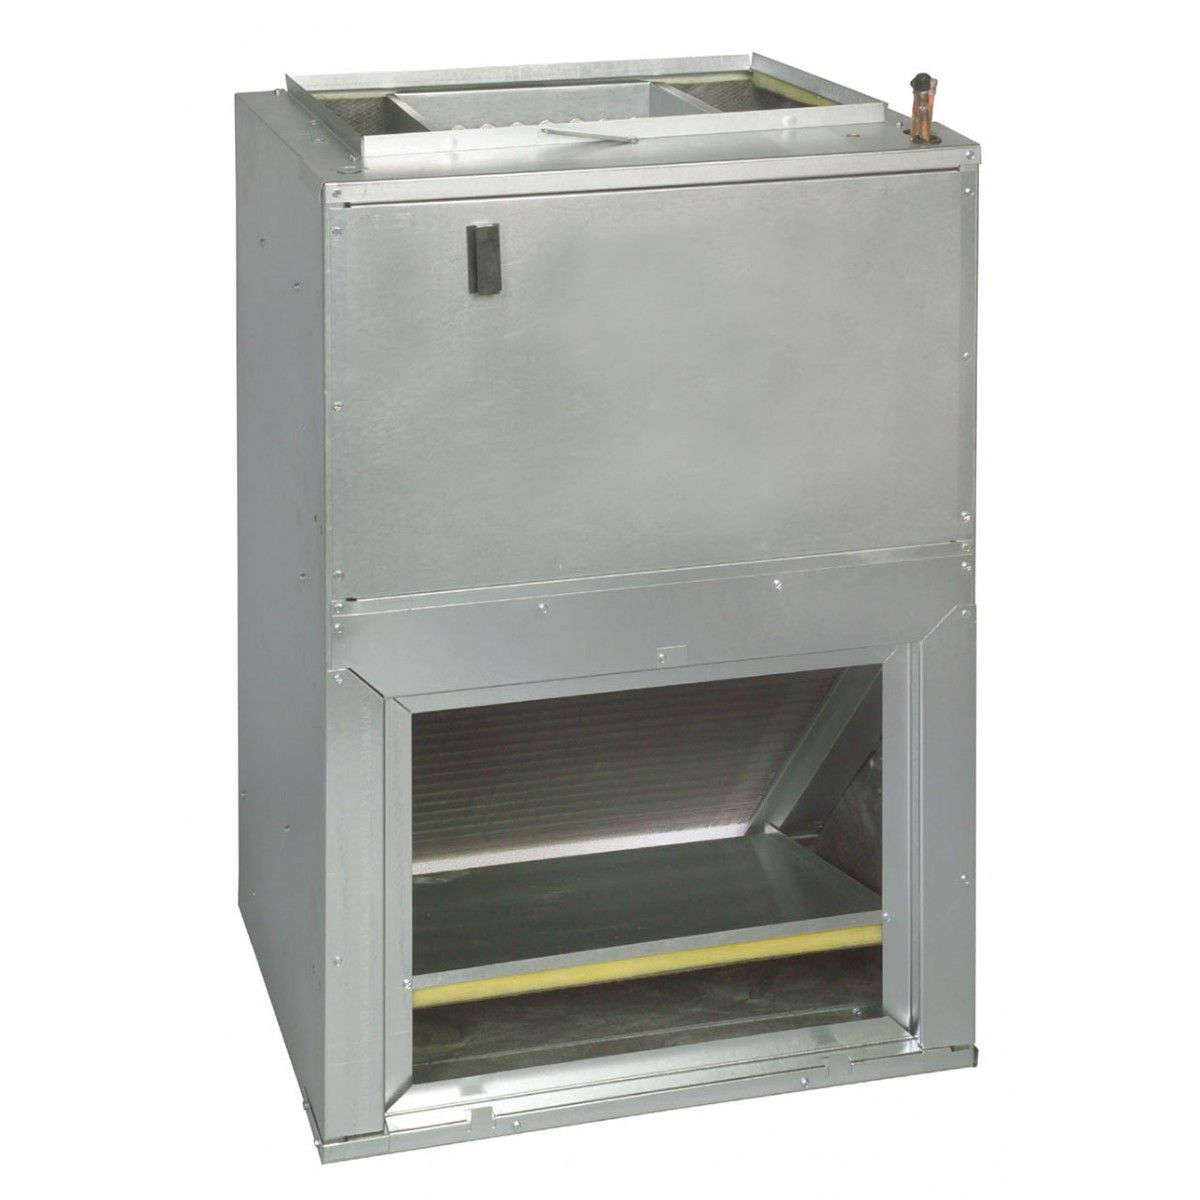 Wall Mount Air Handler in 2.5 Ton 3.0 Ton Air Handler Components #7E754D